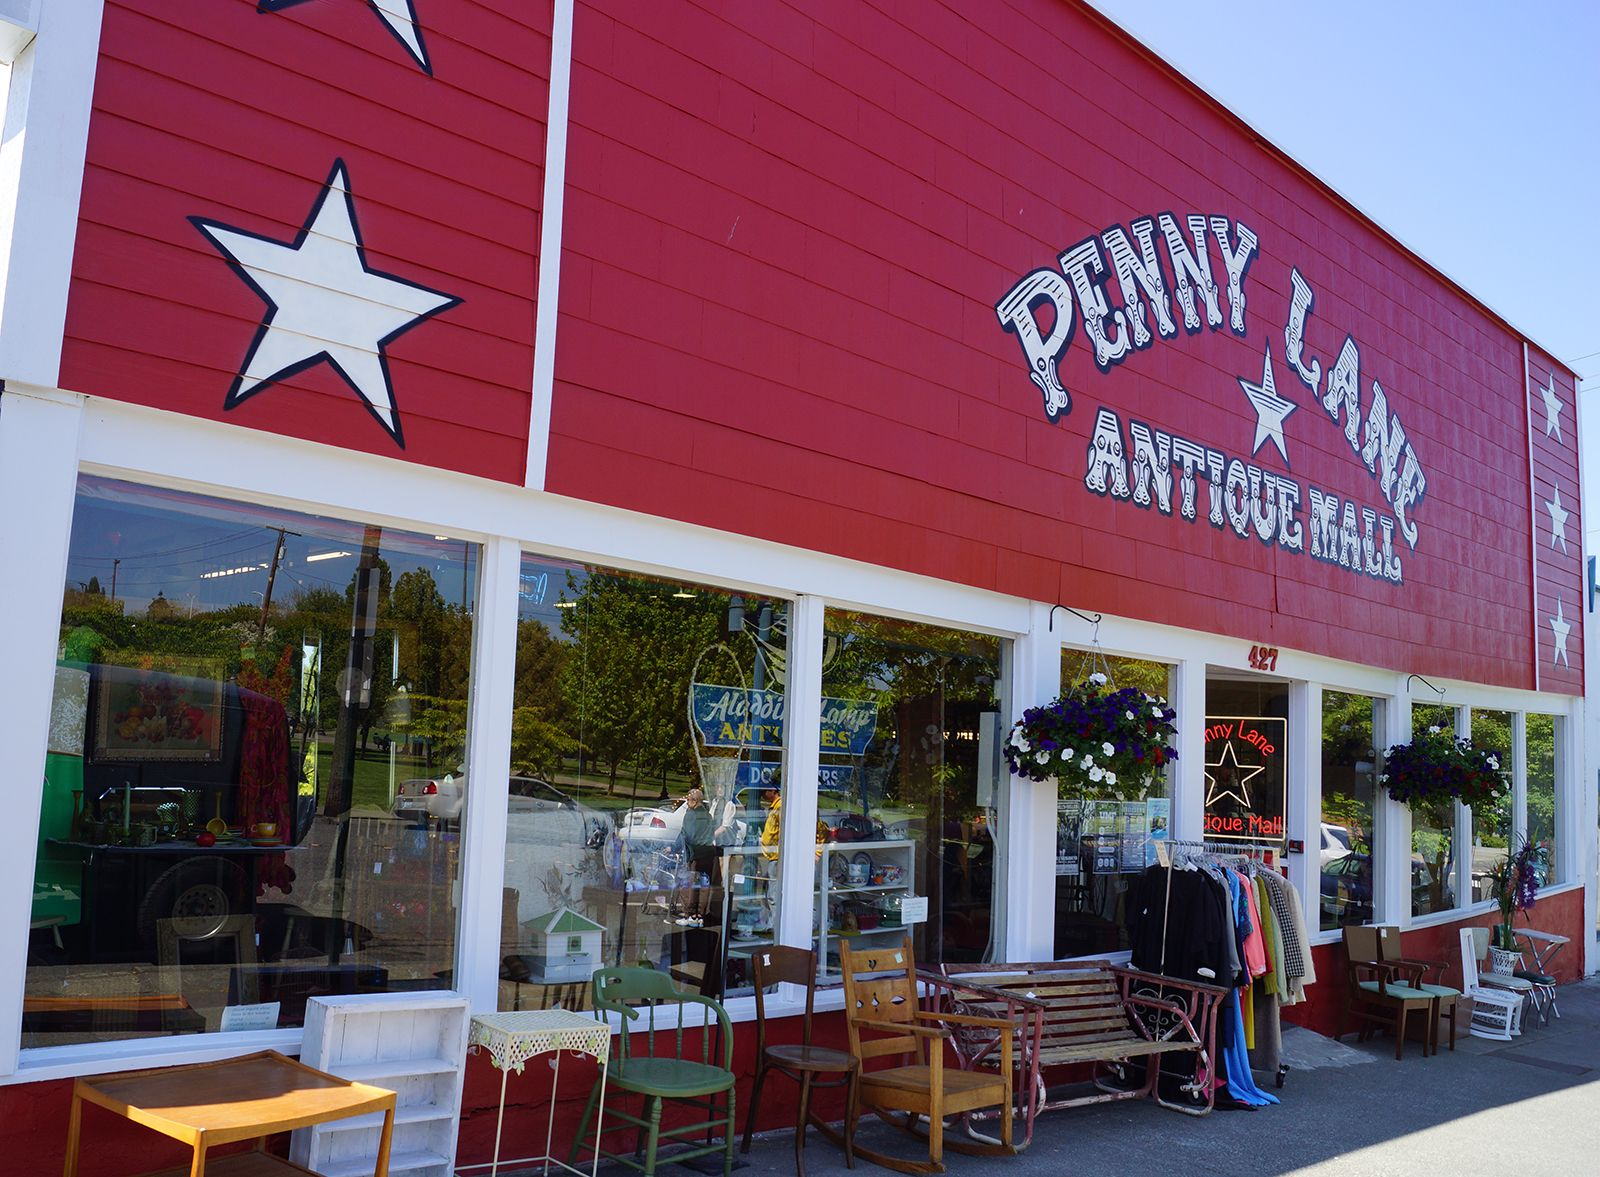 Penny Lane Antique Mall 427 West Holly St. Bellingham, WA Http://